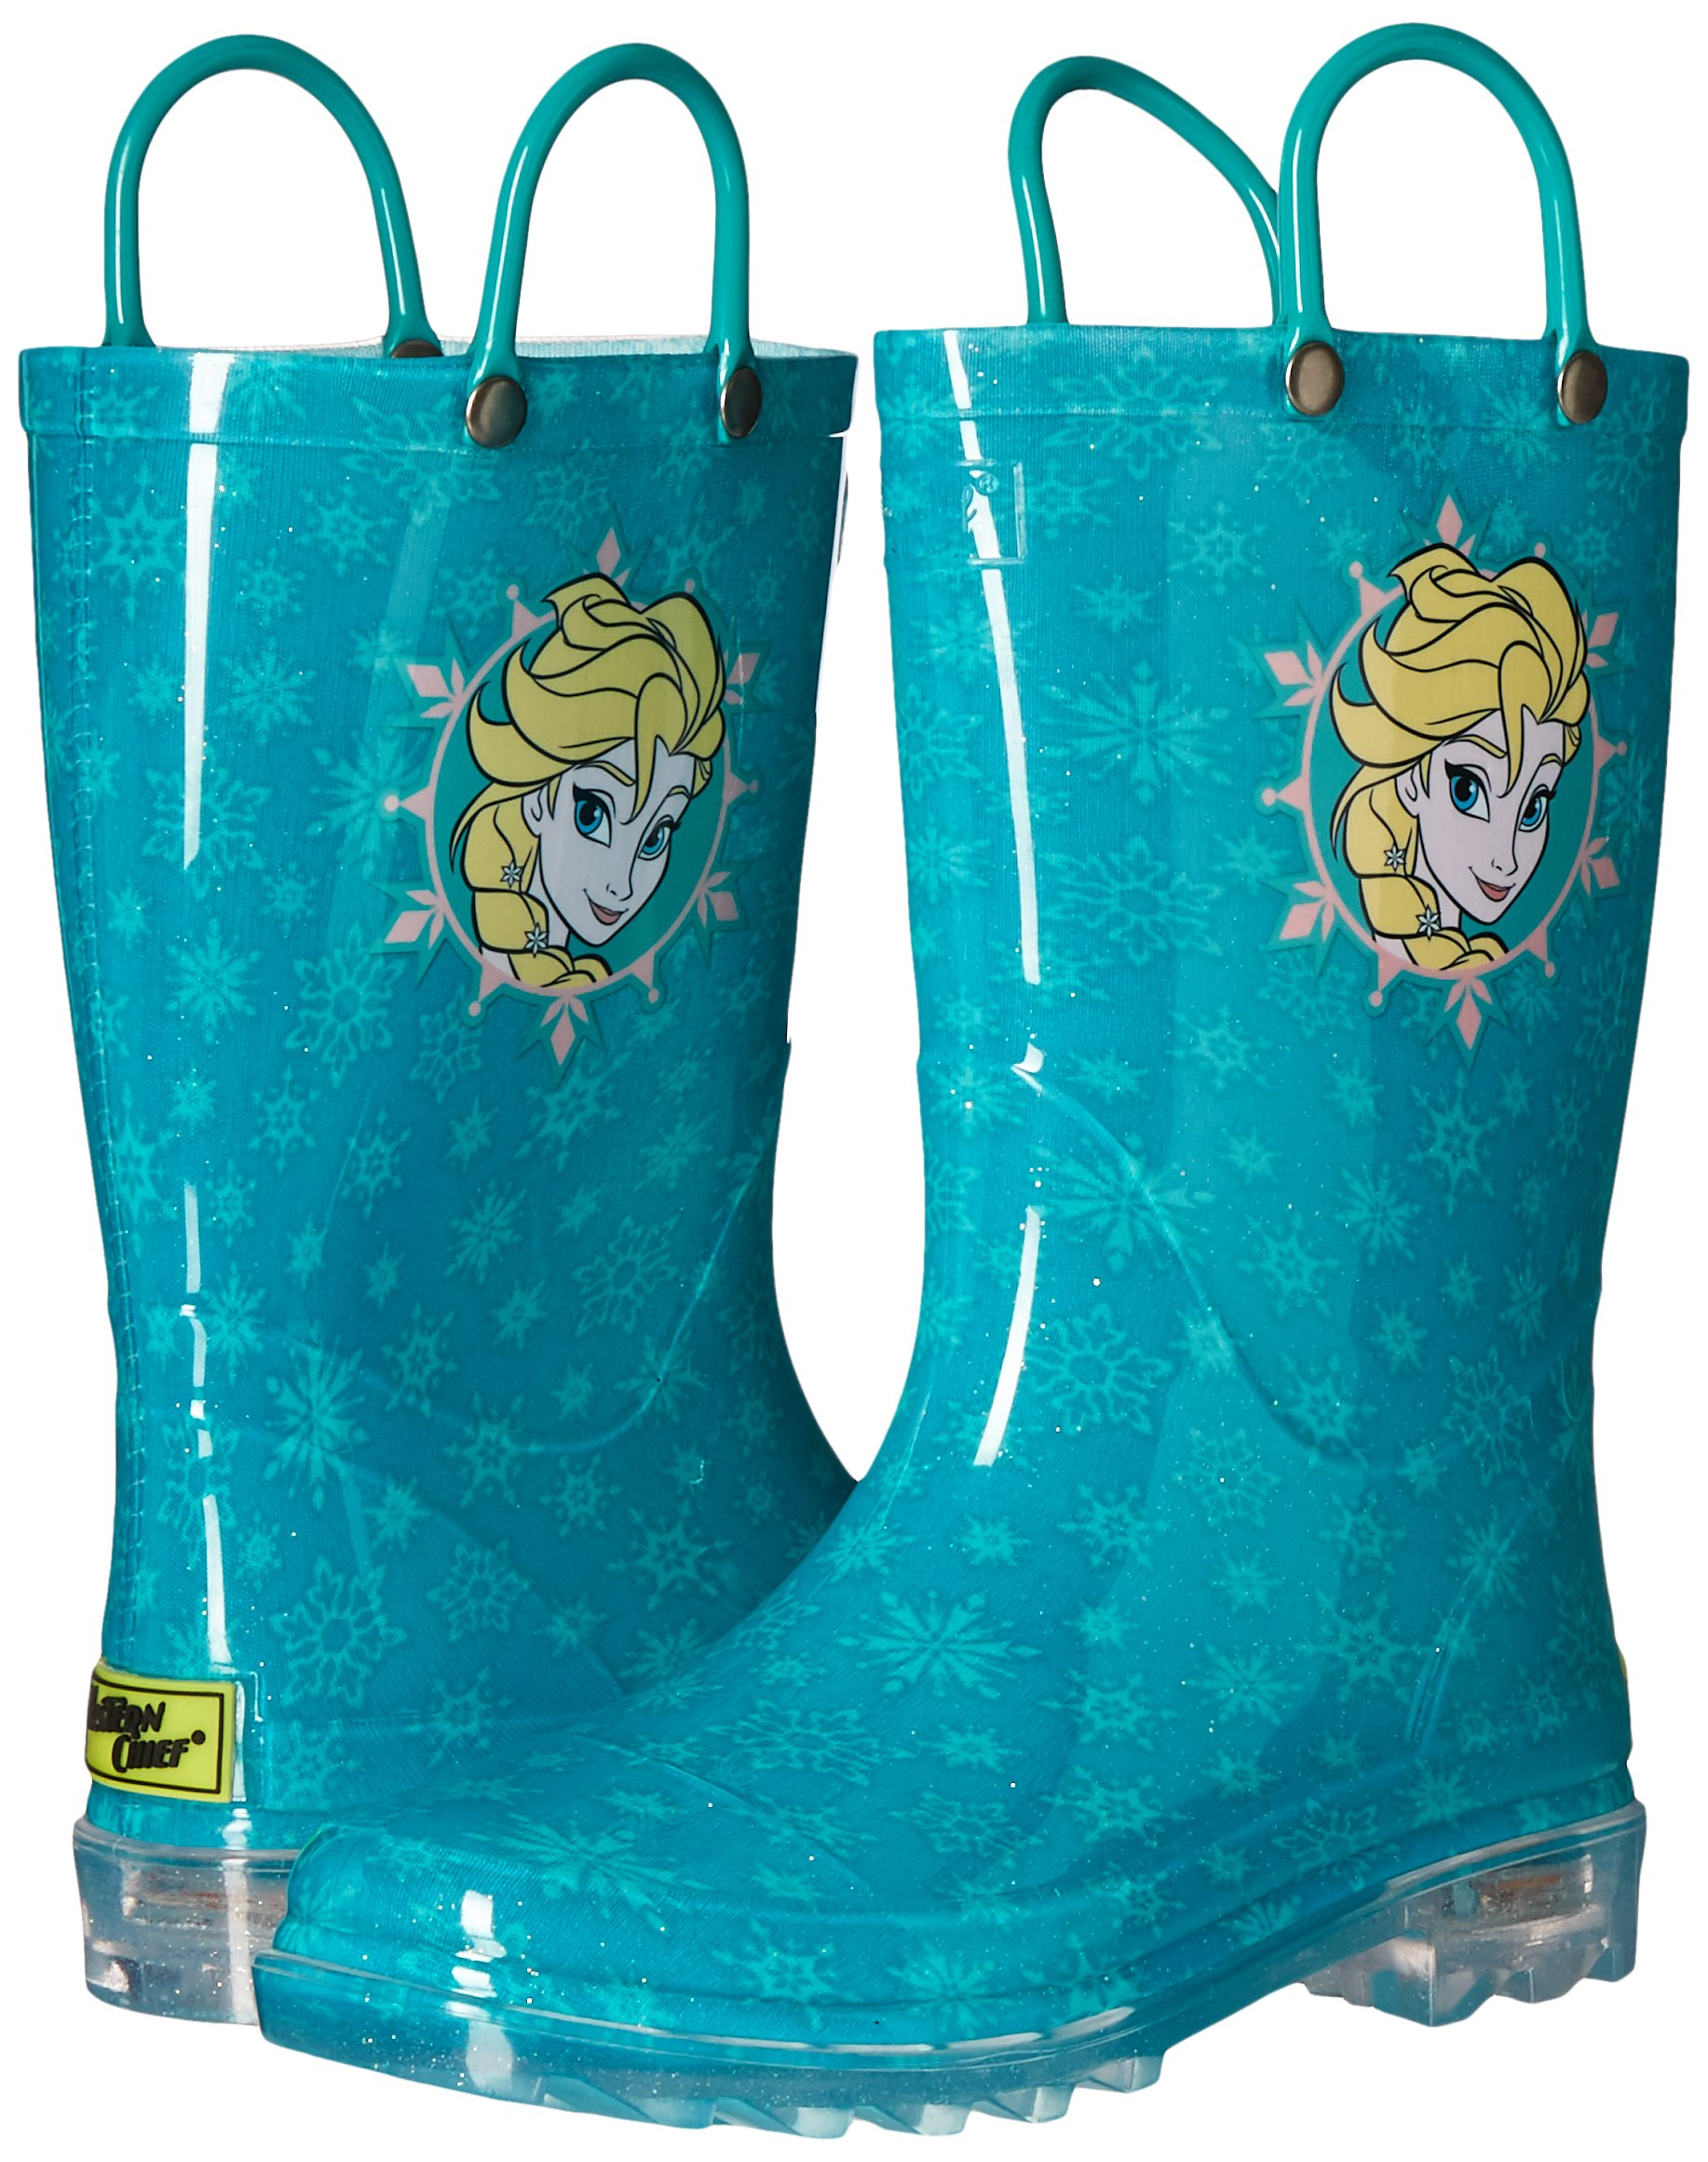 Western Chief Kids Girls' Waterproof Rain Boots That Light up with Each Step, Frozen Elsa and and, 13 M US Little Kid by Western Chief (Image #6)